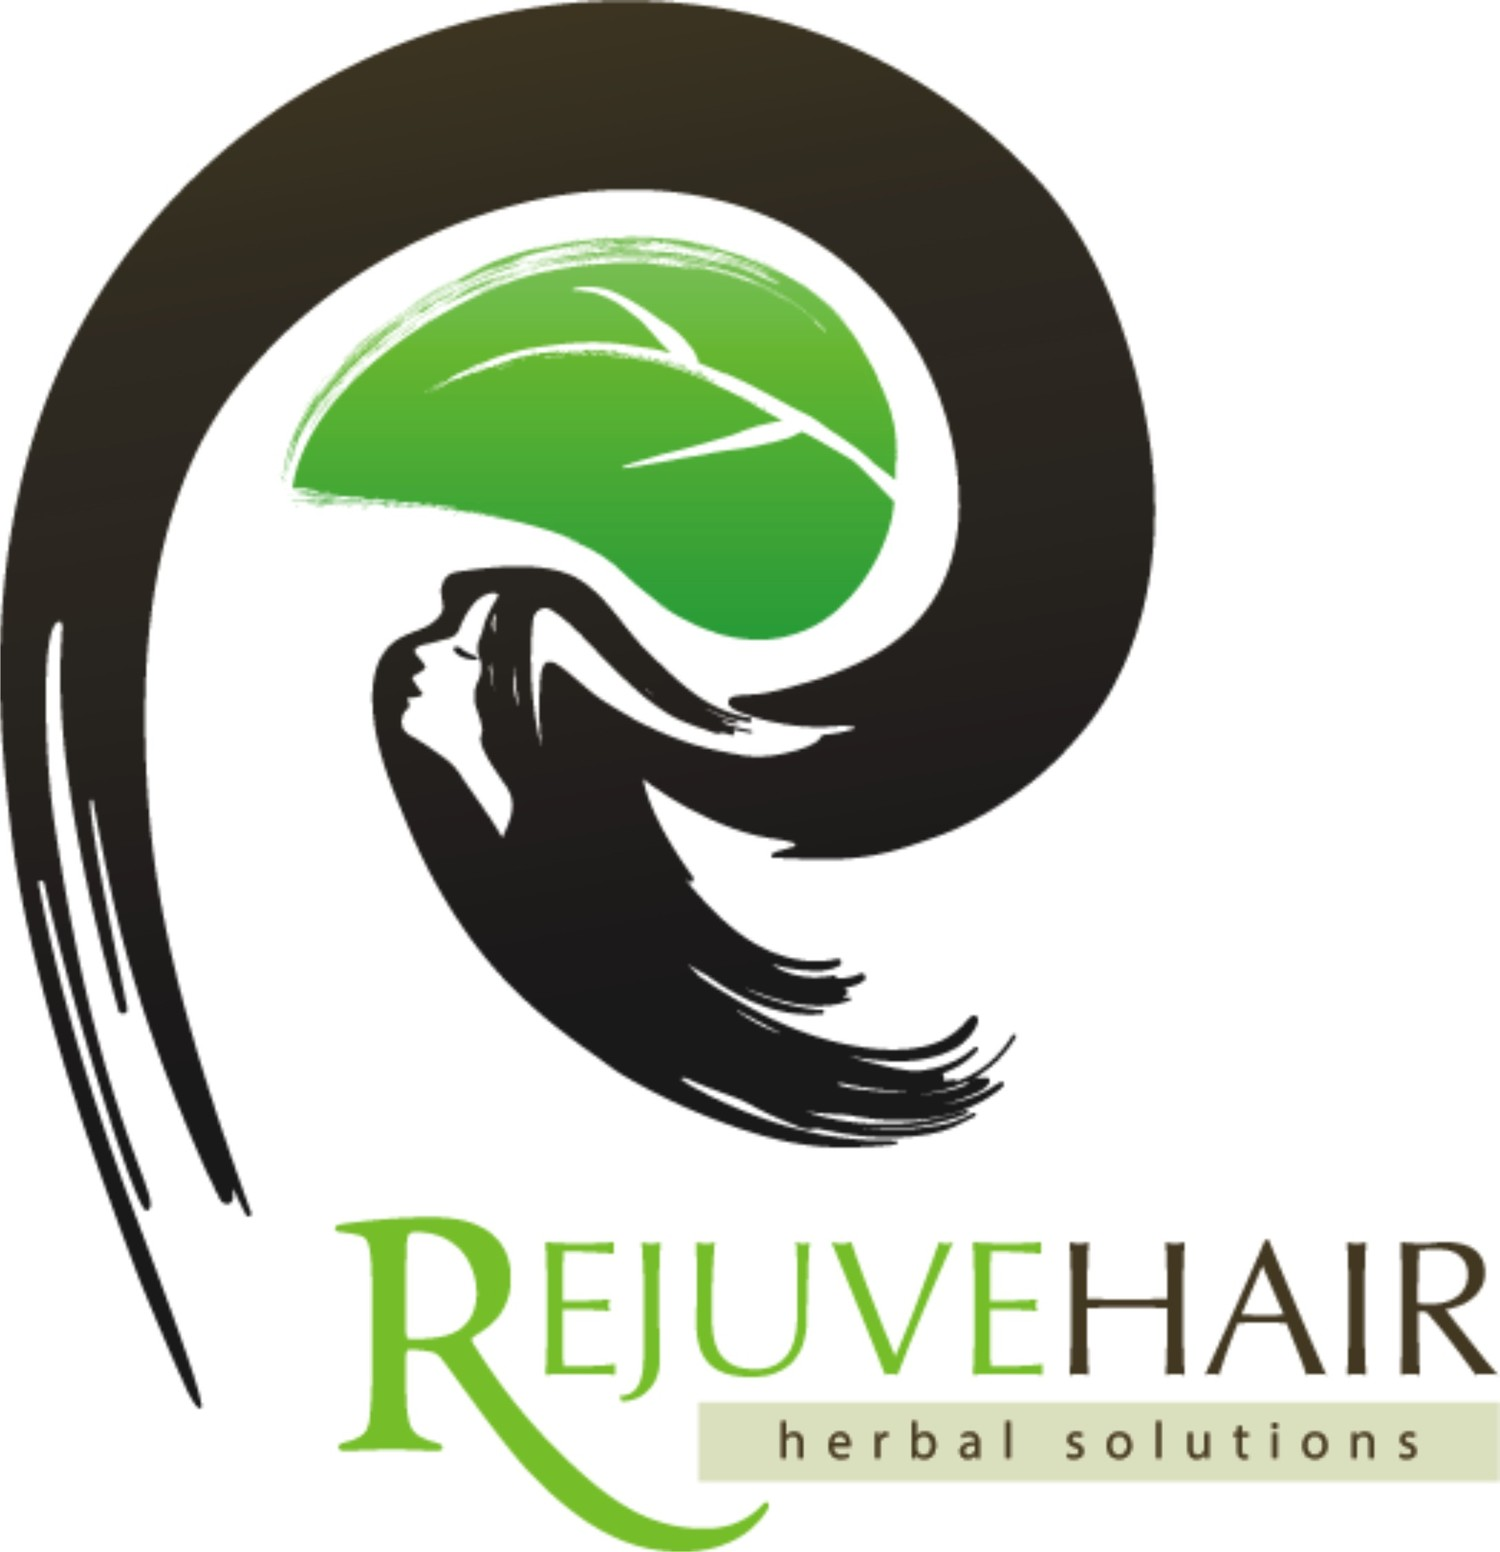 REJUVEHAIR herbal solutions